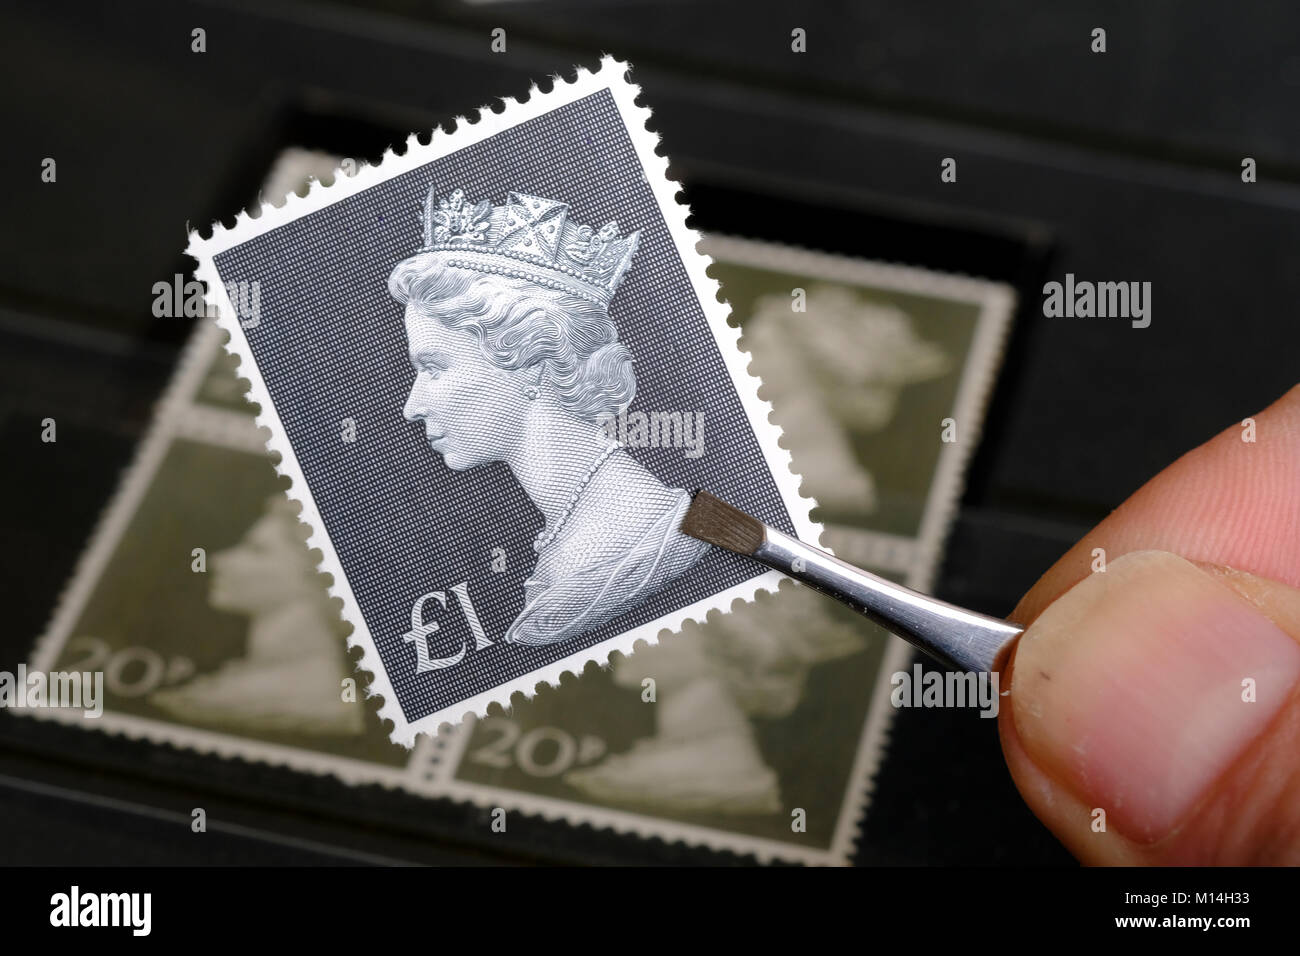 Vintage £1 stamp being held by stamp collector - Stock Image